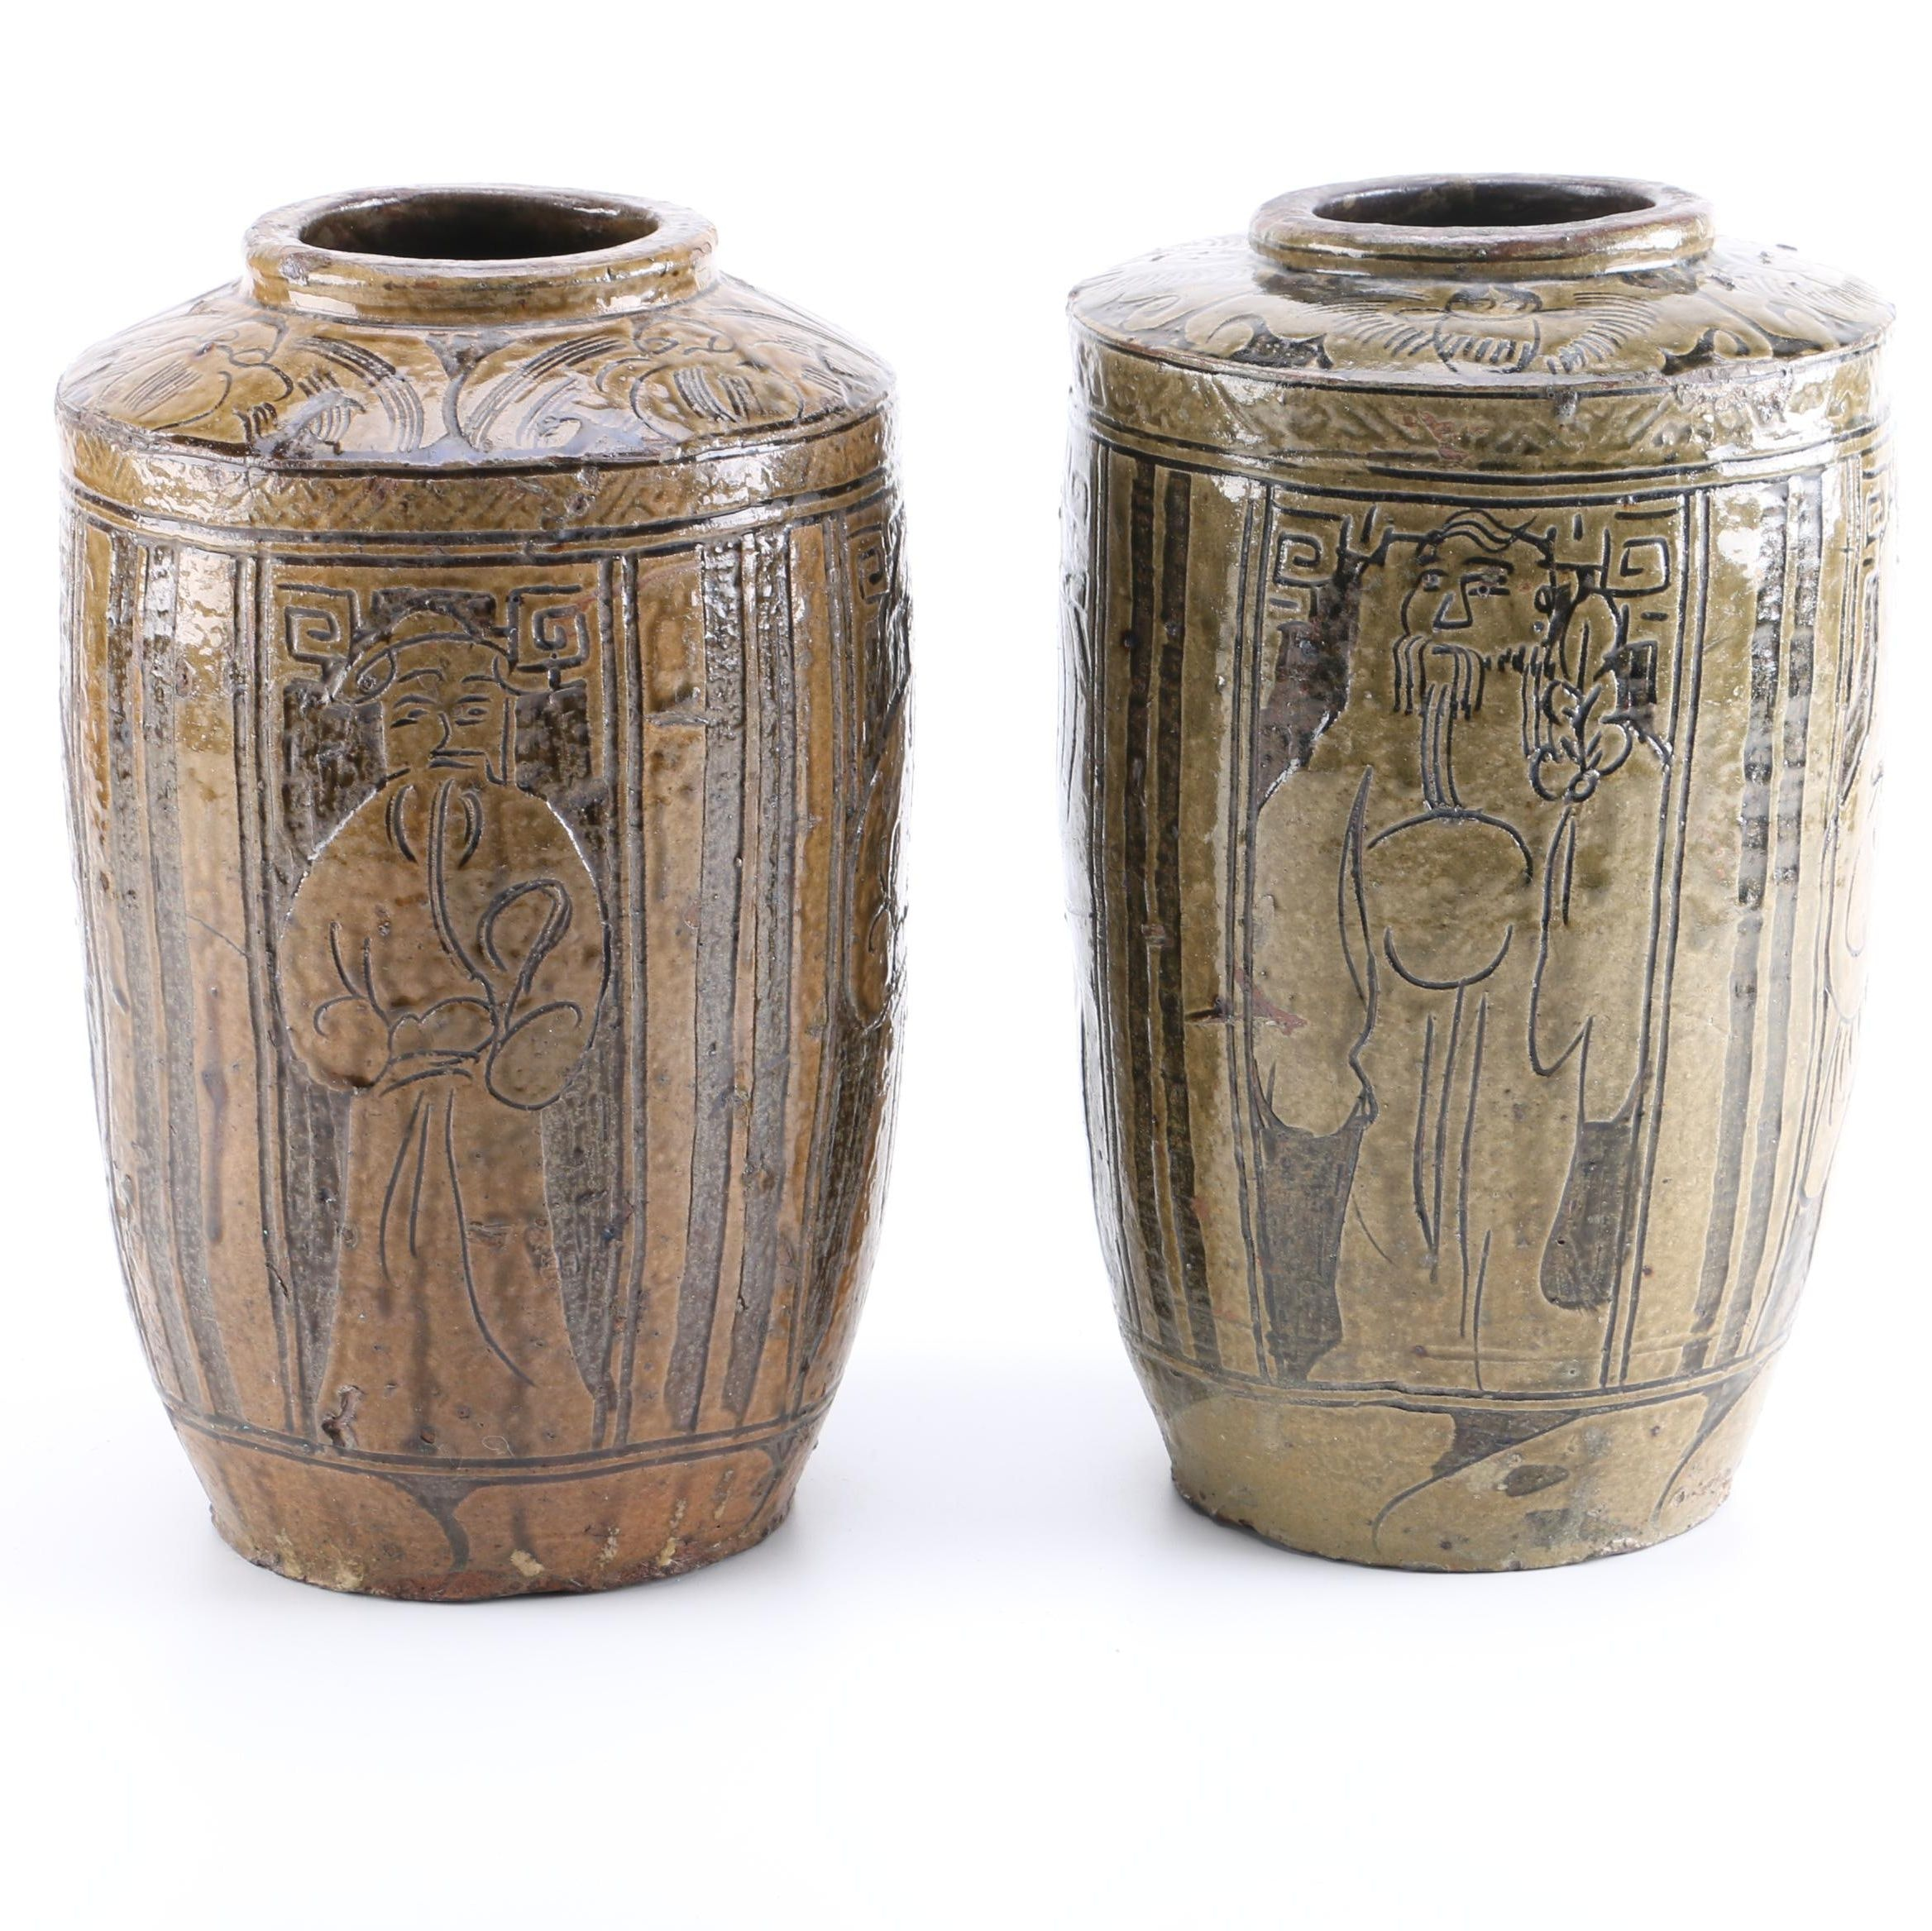 Hand Crafted Chinese Earthenware Ceramic Vases